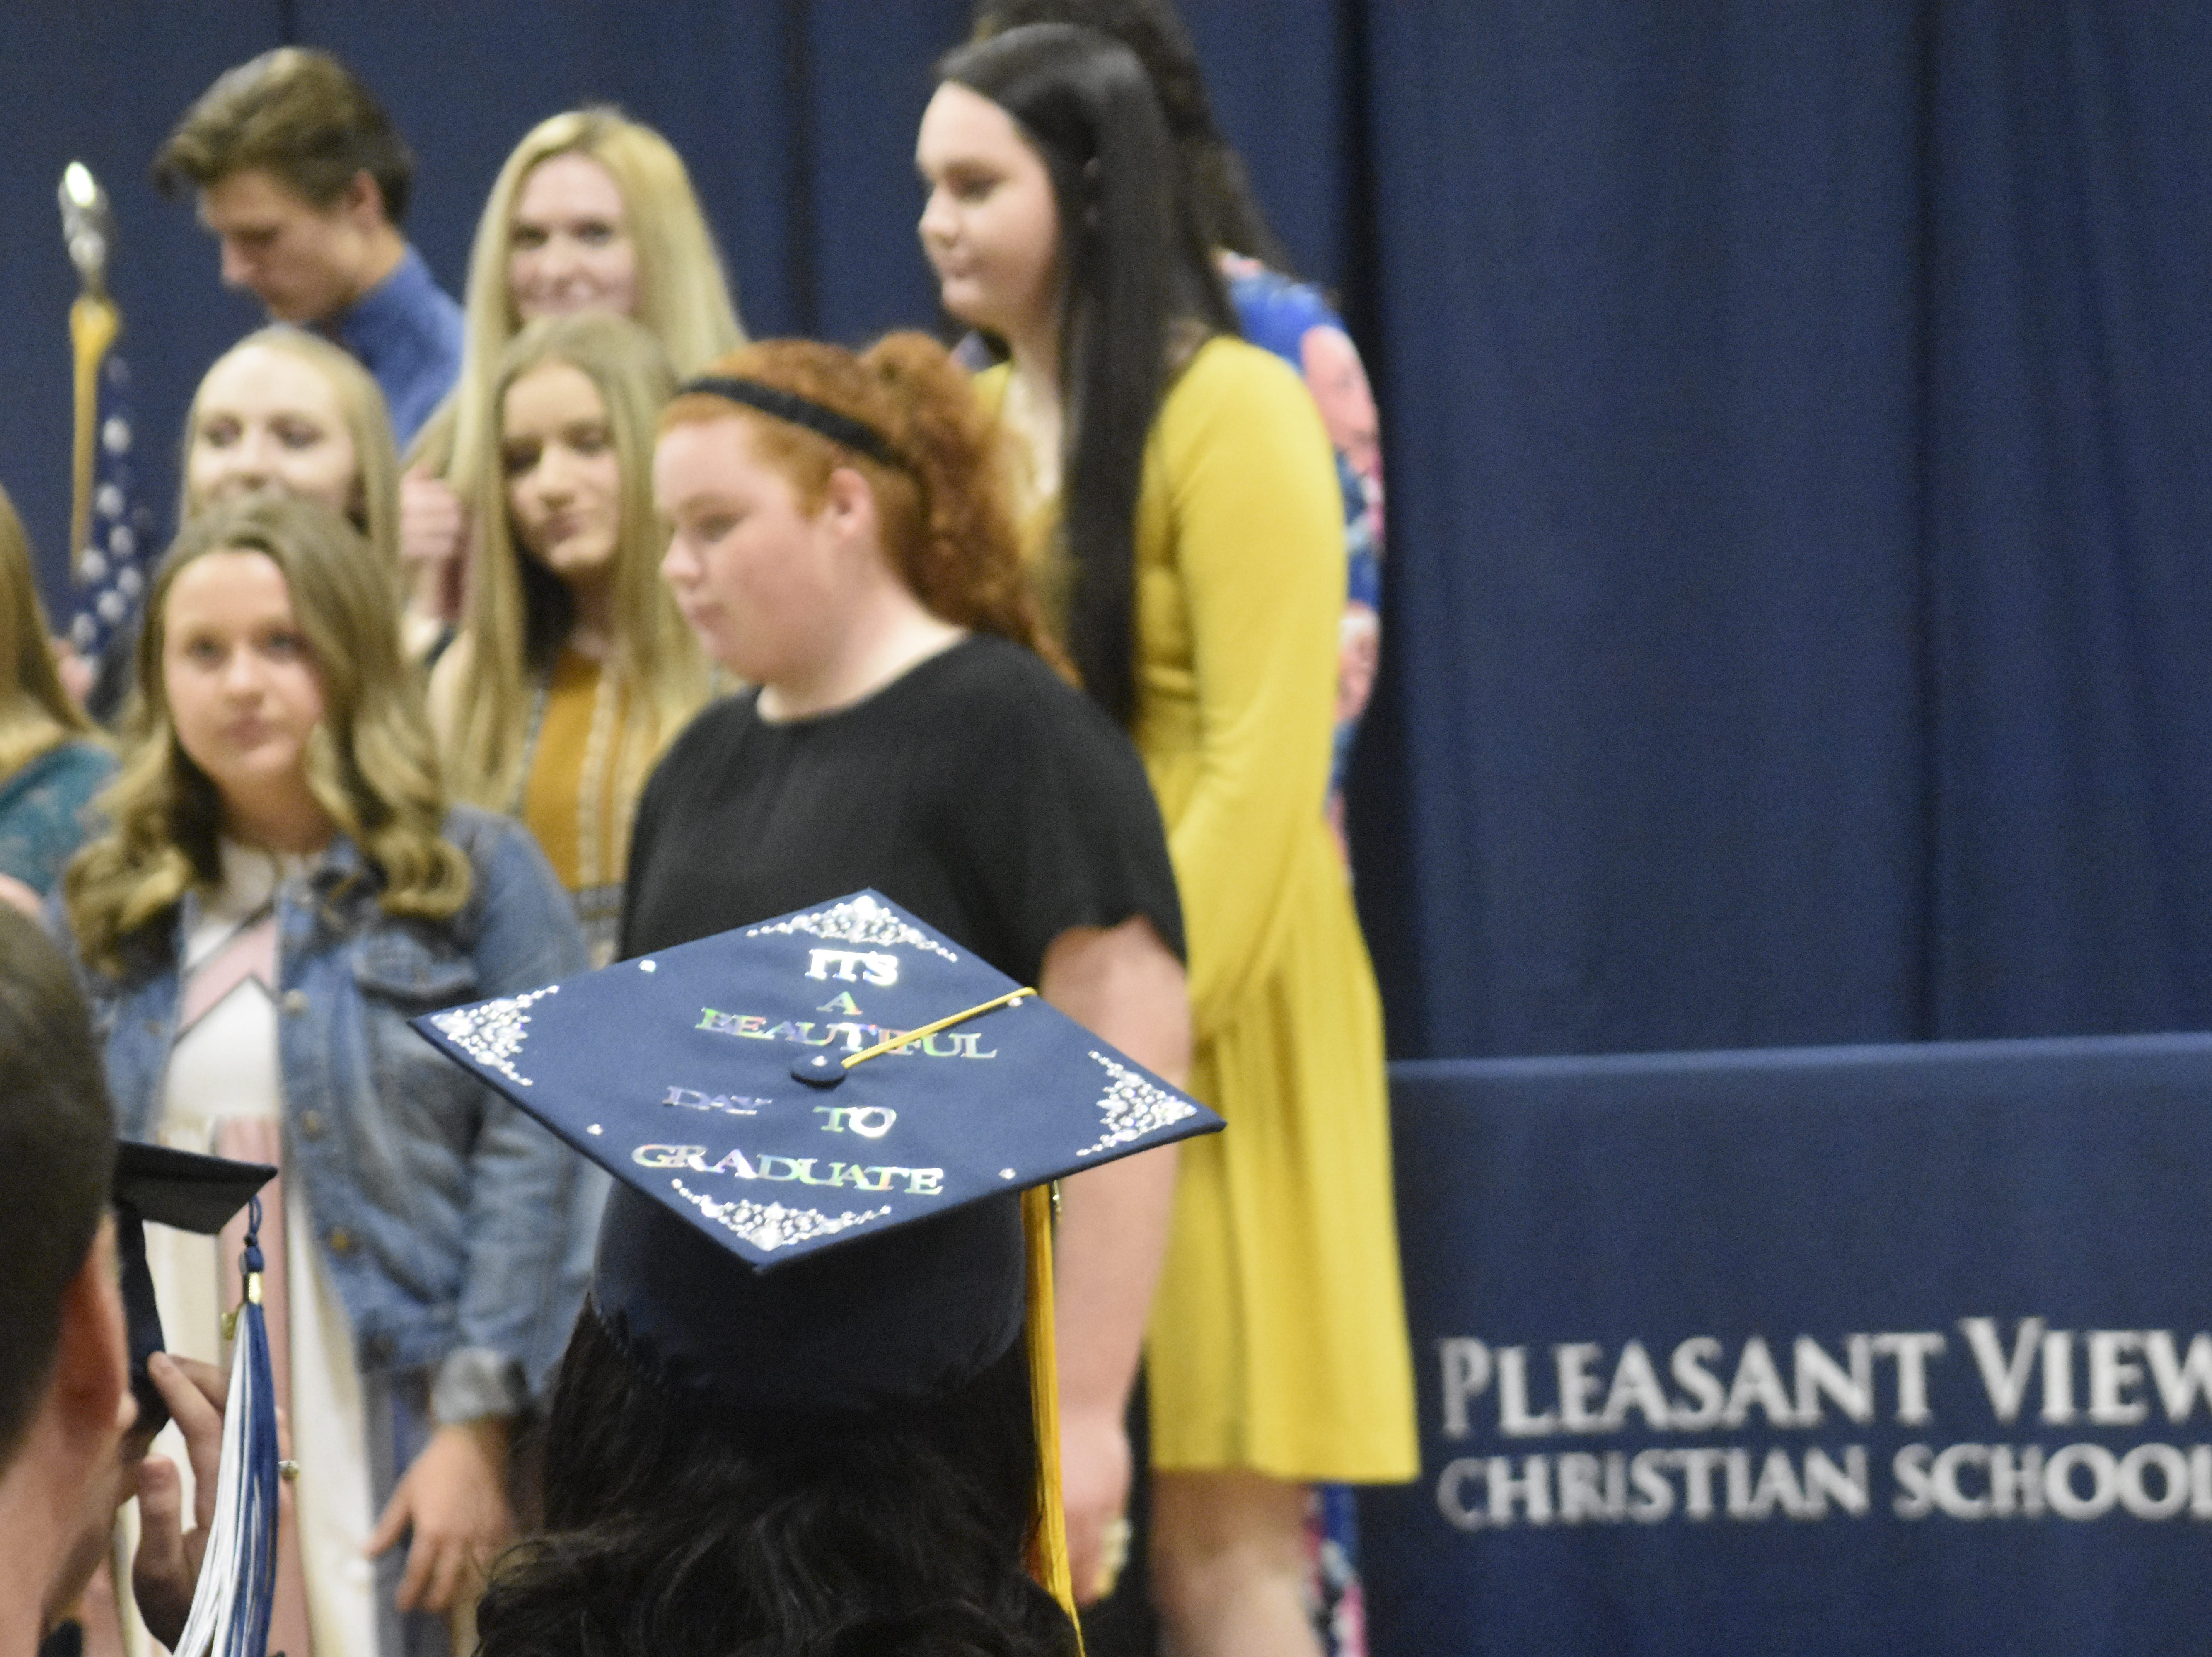 """It's a beautiful day to graduate,"" reads a decorated graduation cap at Pleasant View Christian School on Monday, May 13."